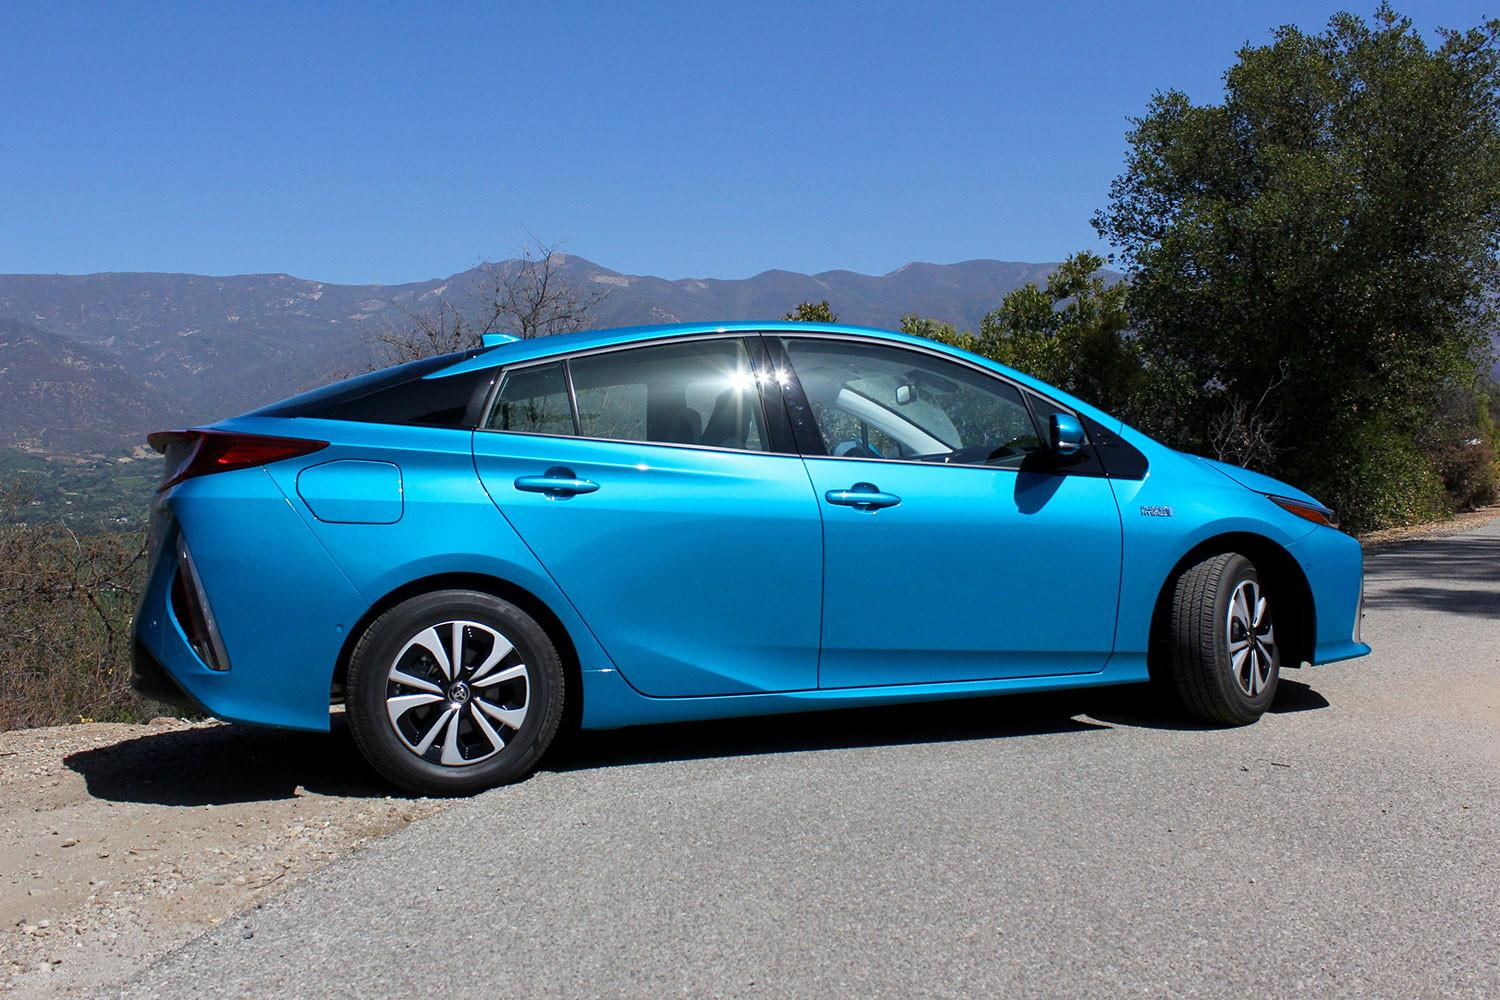 Toyota simultaneously focusing on hybrids and battery-powered electric vehicles